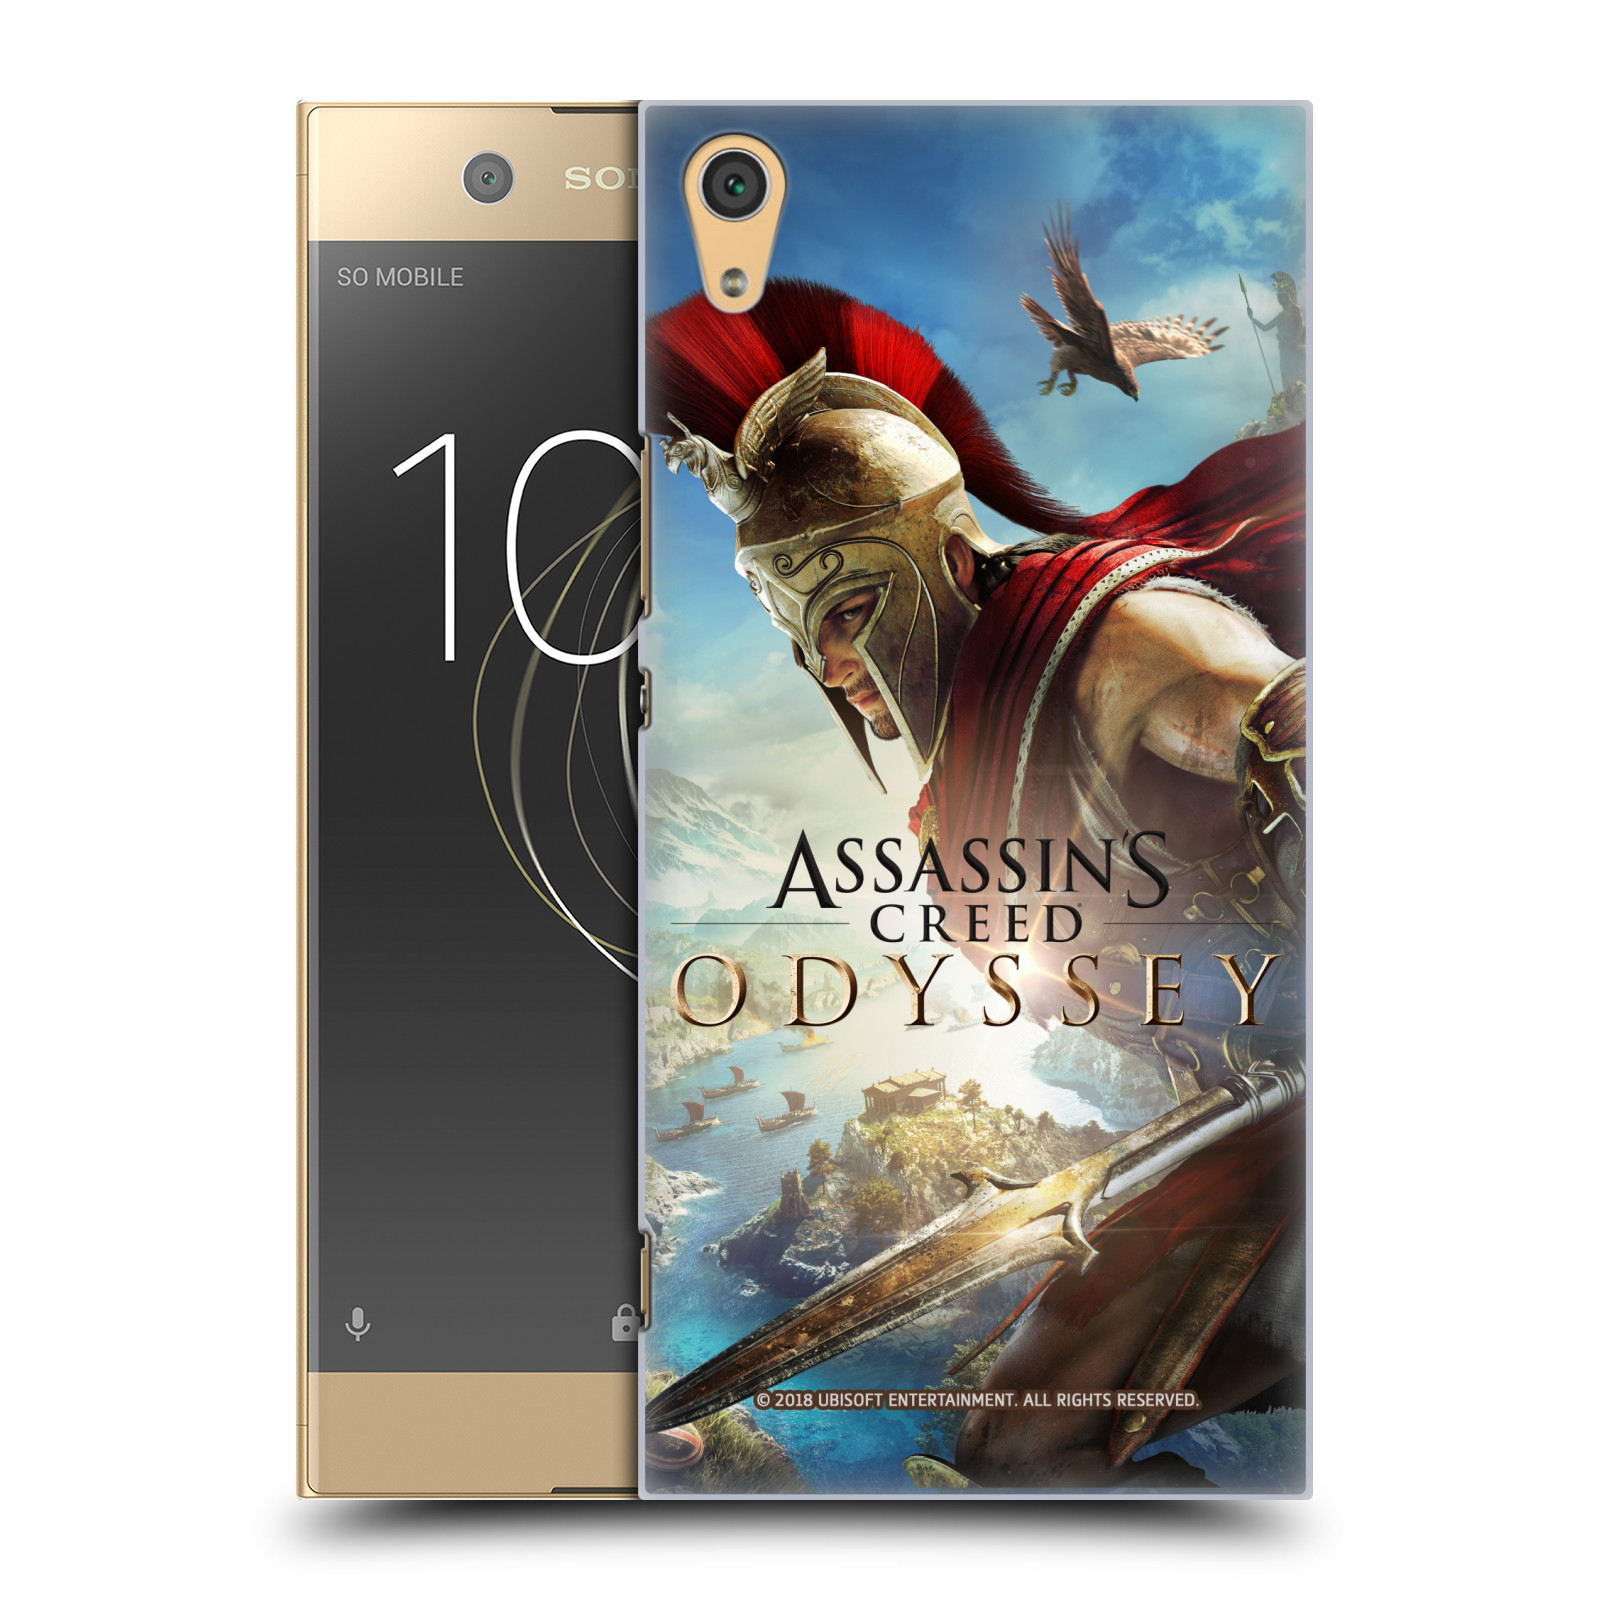 Pouzdro na mobil Sony Xperia XA1 ULTRA - HEAD CASE - Assassins Creed Odyssey Alexios a Ikaros